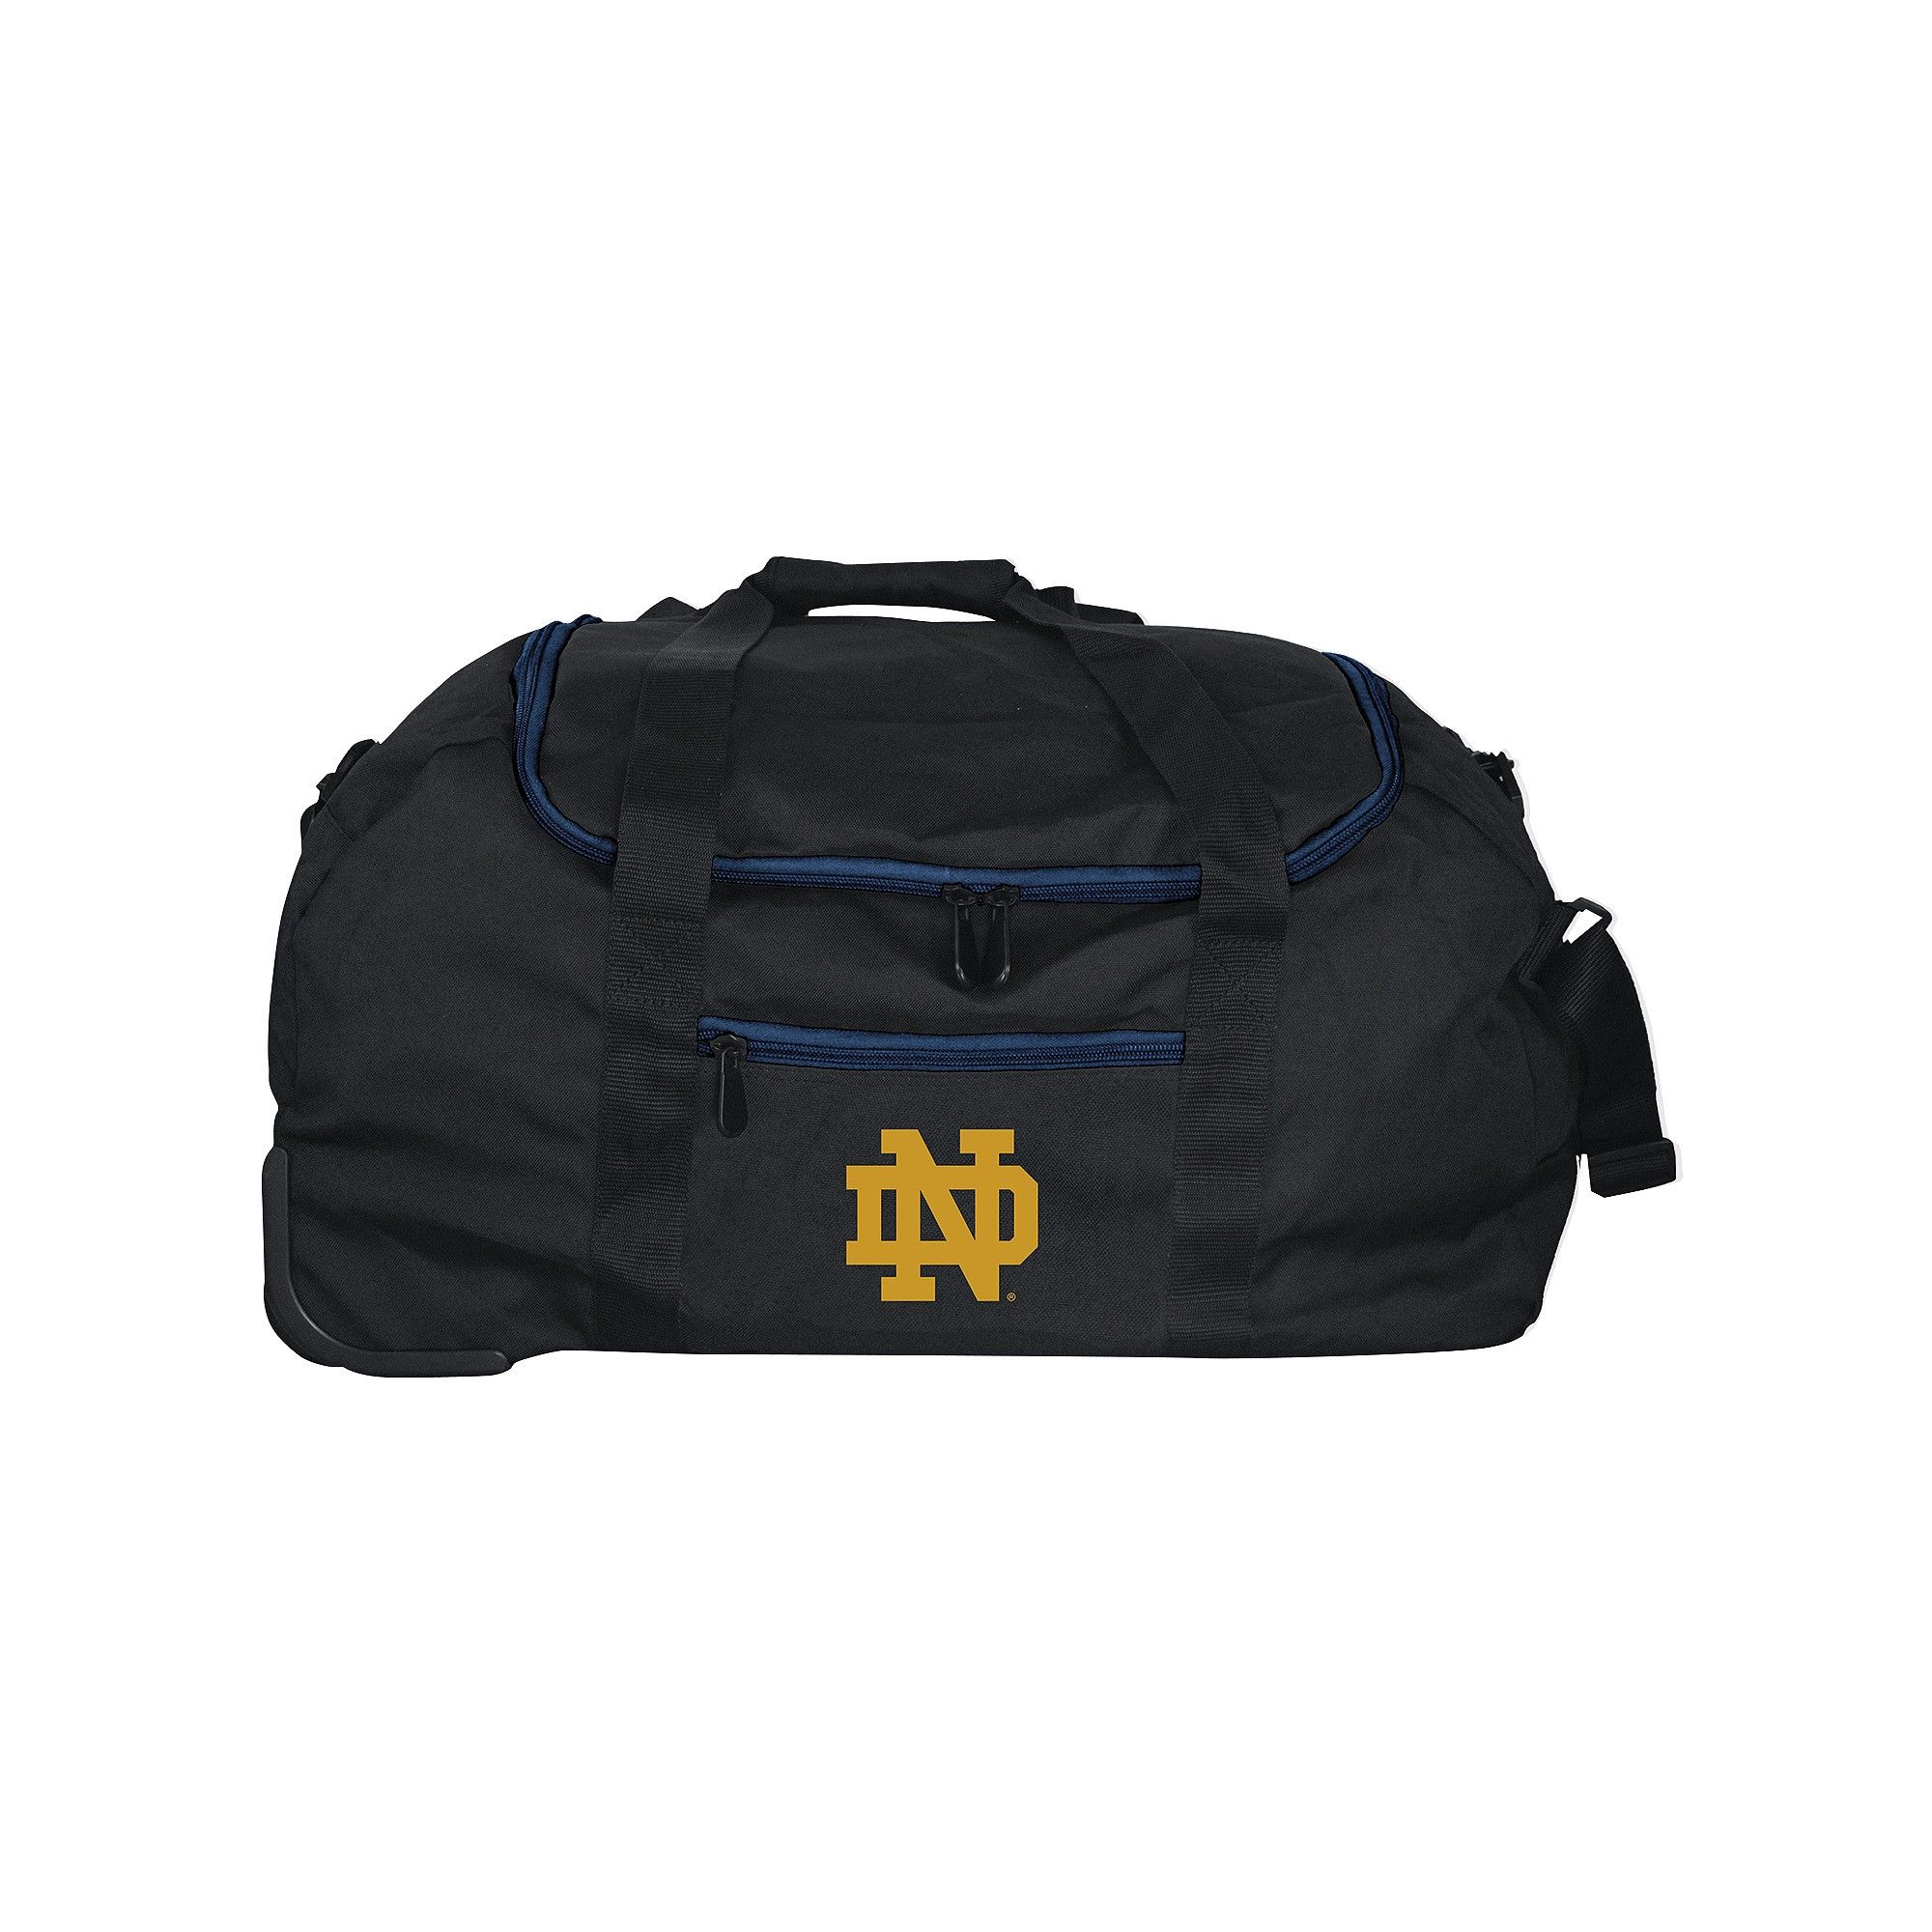 6ef3ced47df4 NCAA Notre Dame Fighting Irish Travel Duffel Bag | Products | Duffel ...